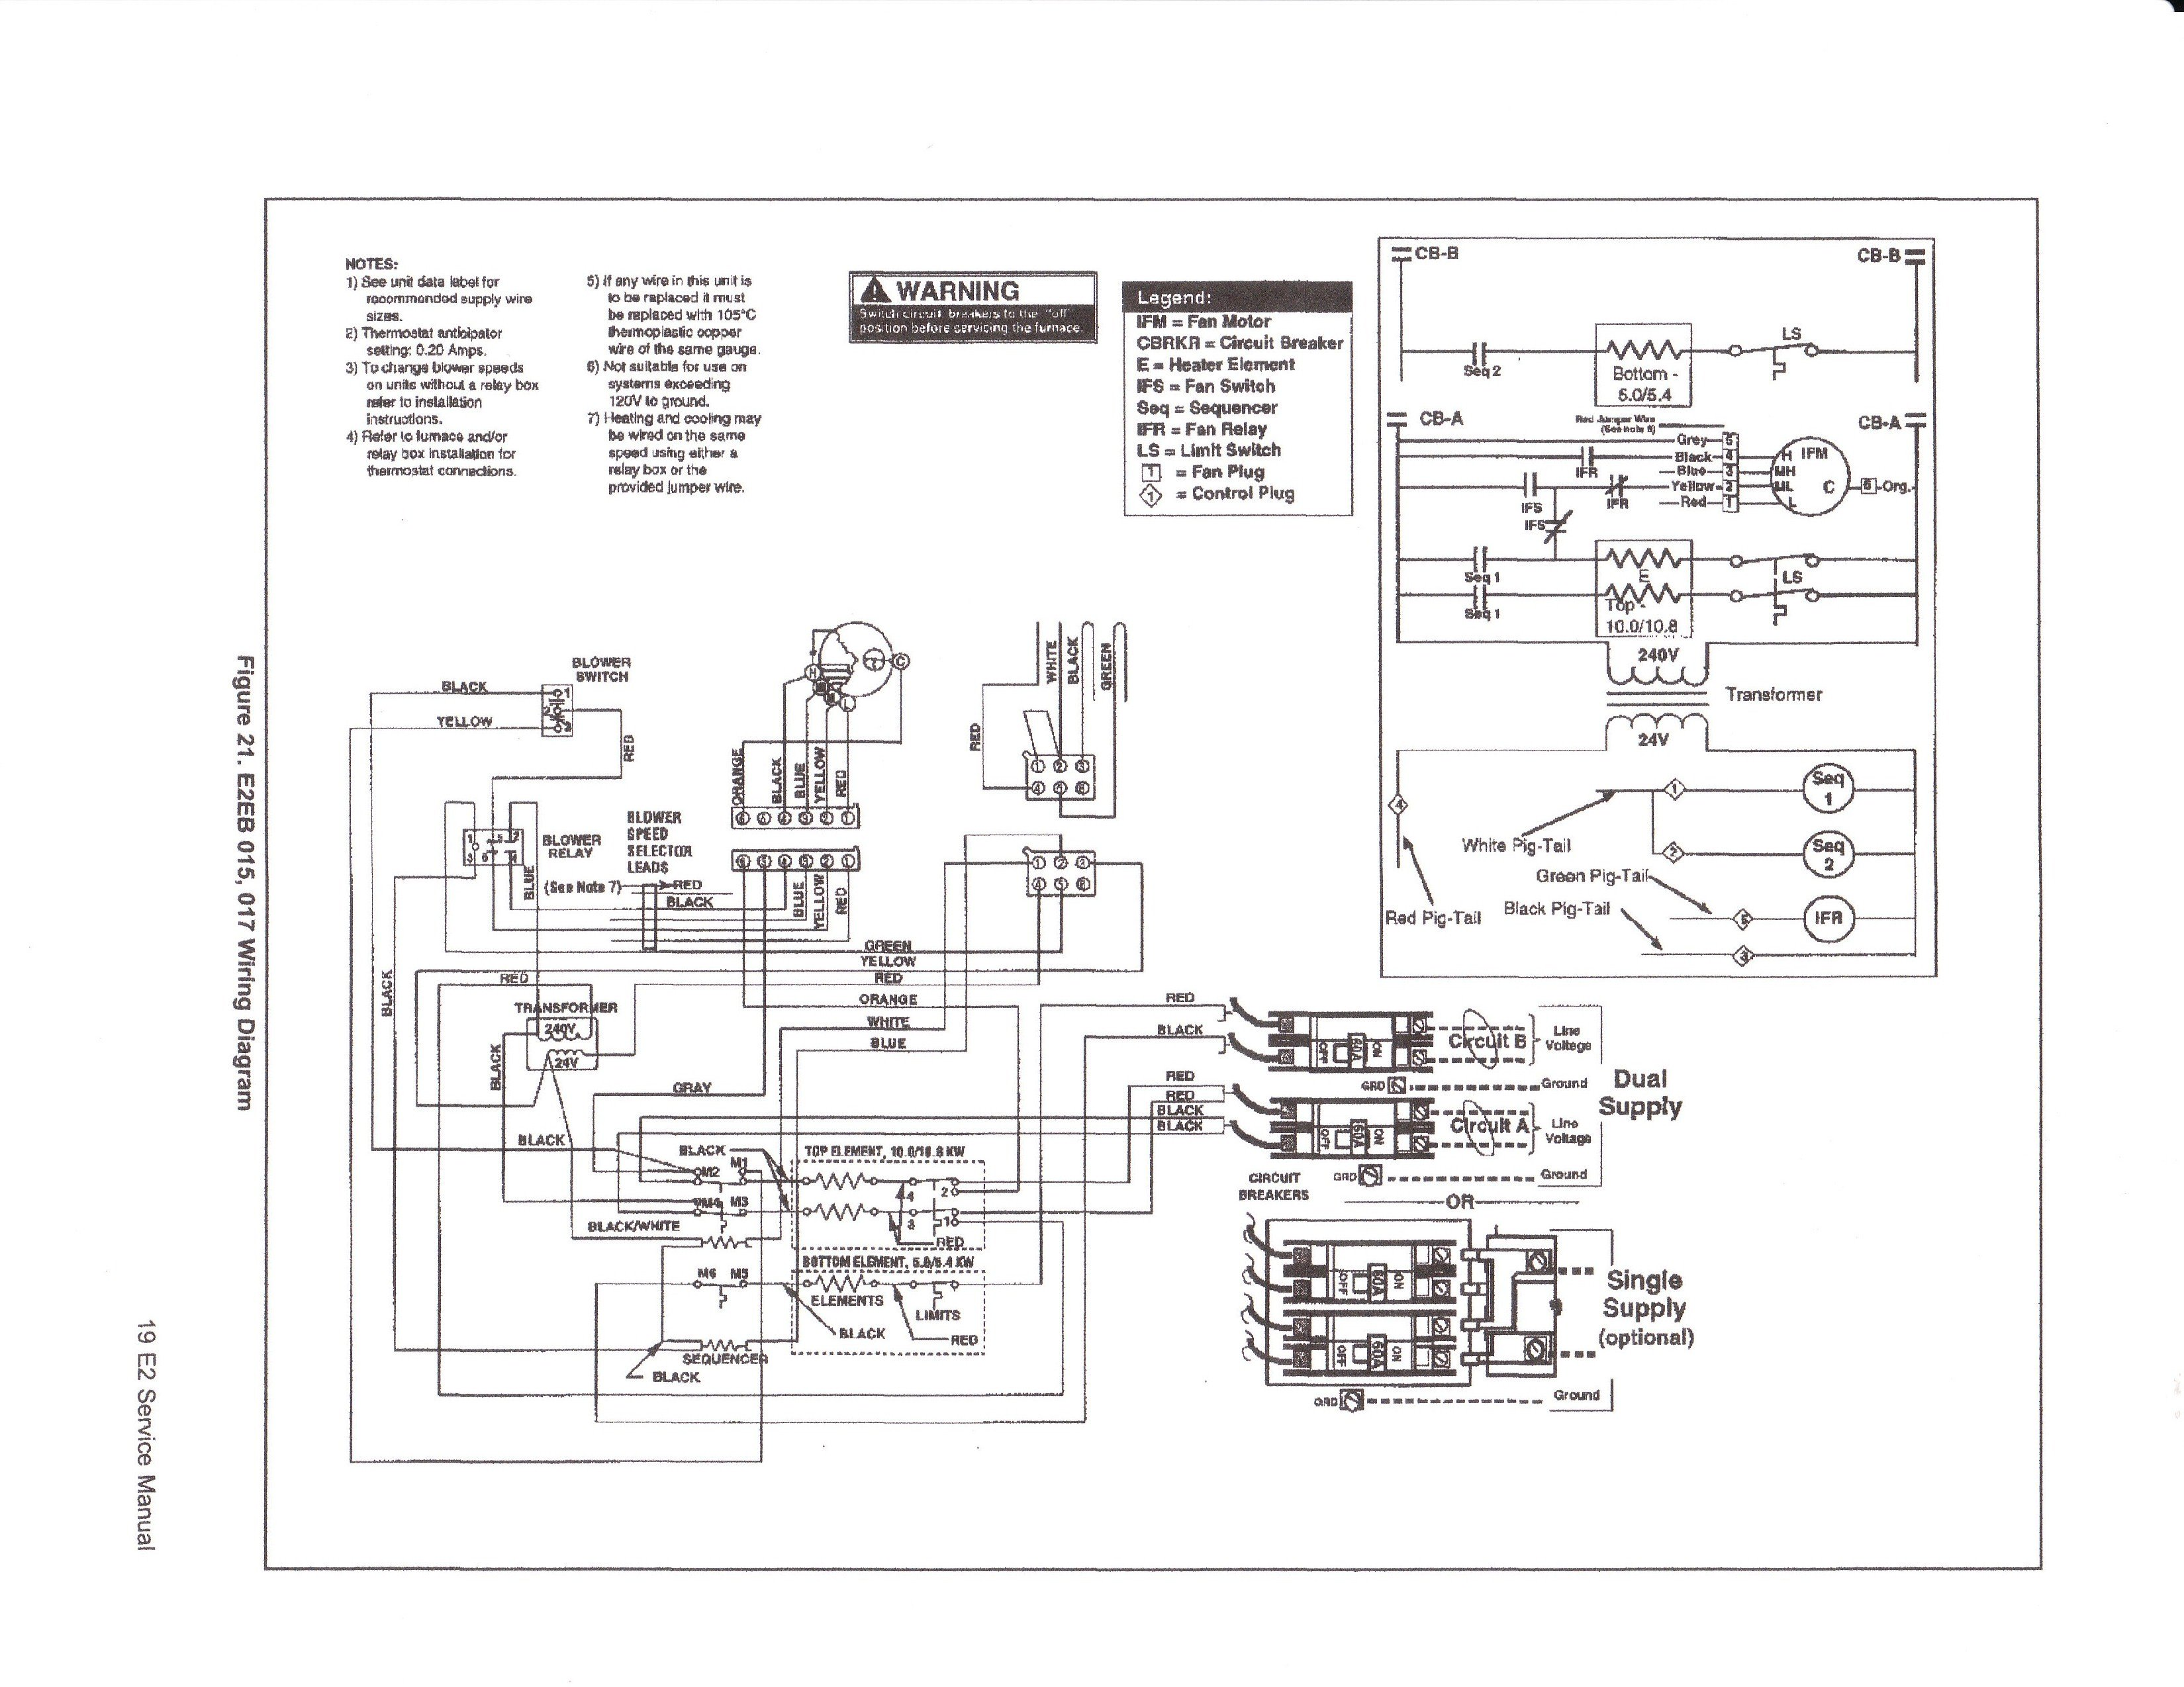 wn_8127] electric furnace wiring diagrams e2eb 015hb schematic wiring  carn phil inifo mecad rdona lite wigeg mohammedshrine librar wiring 101